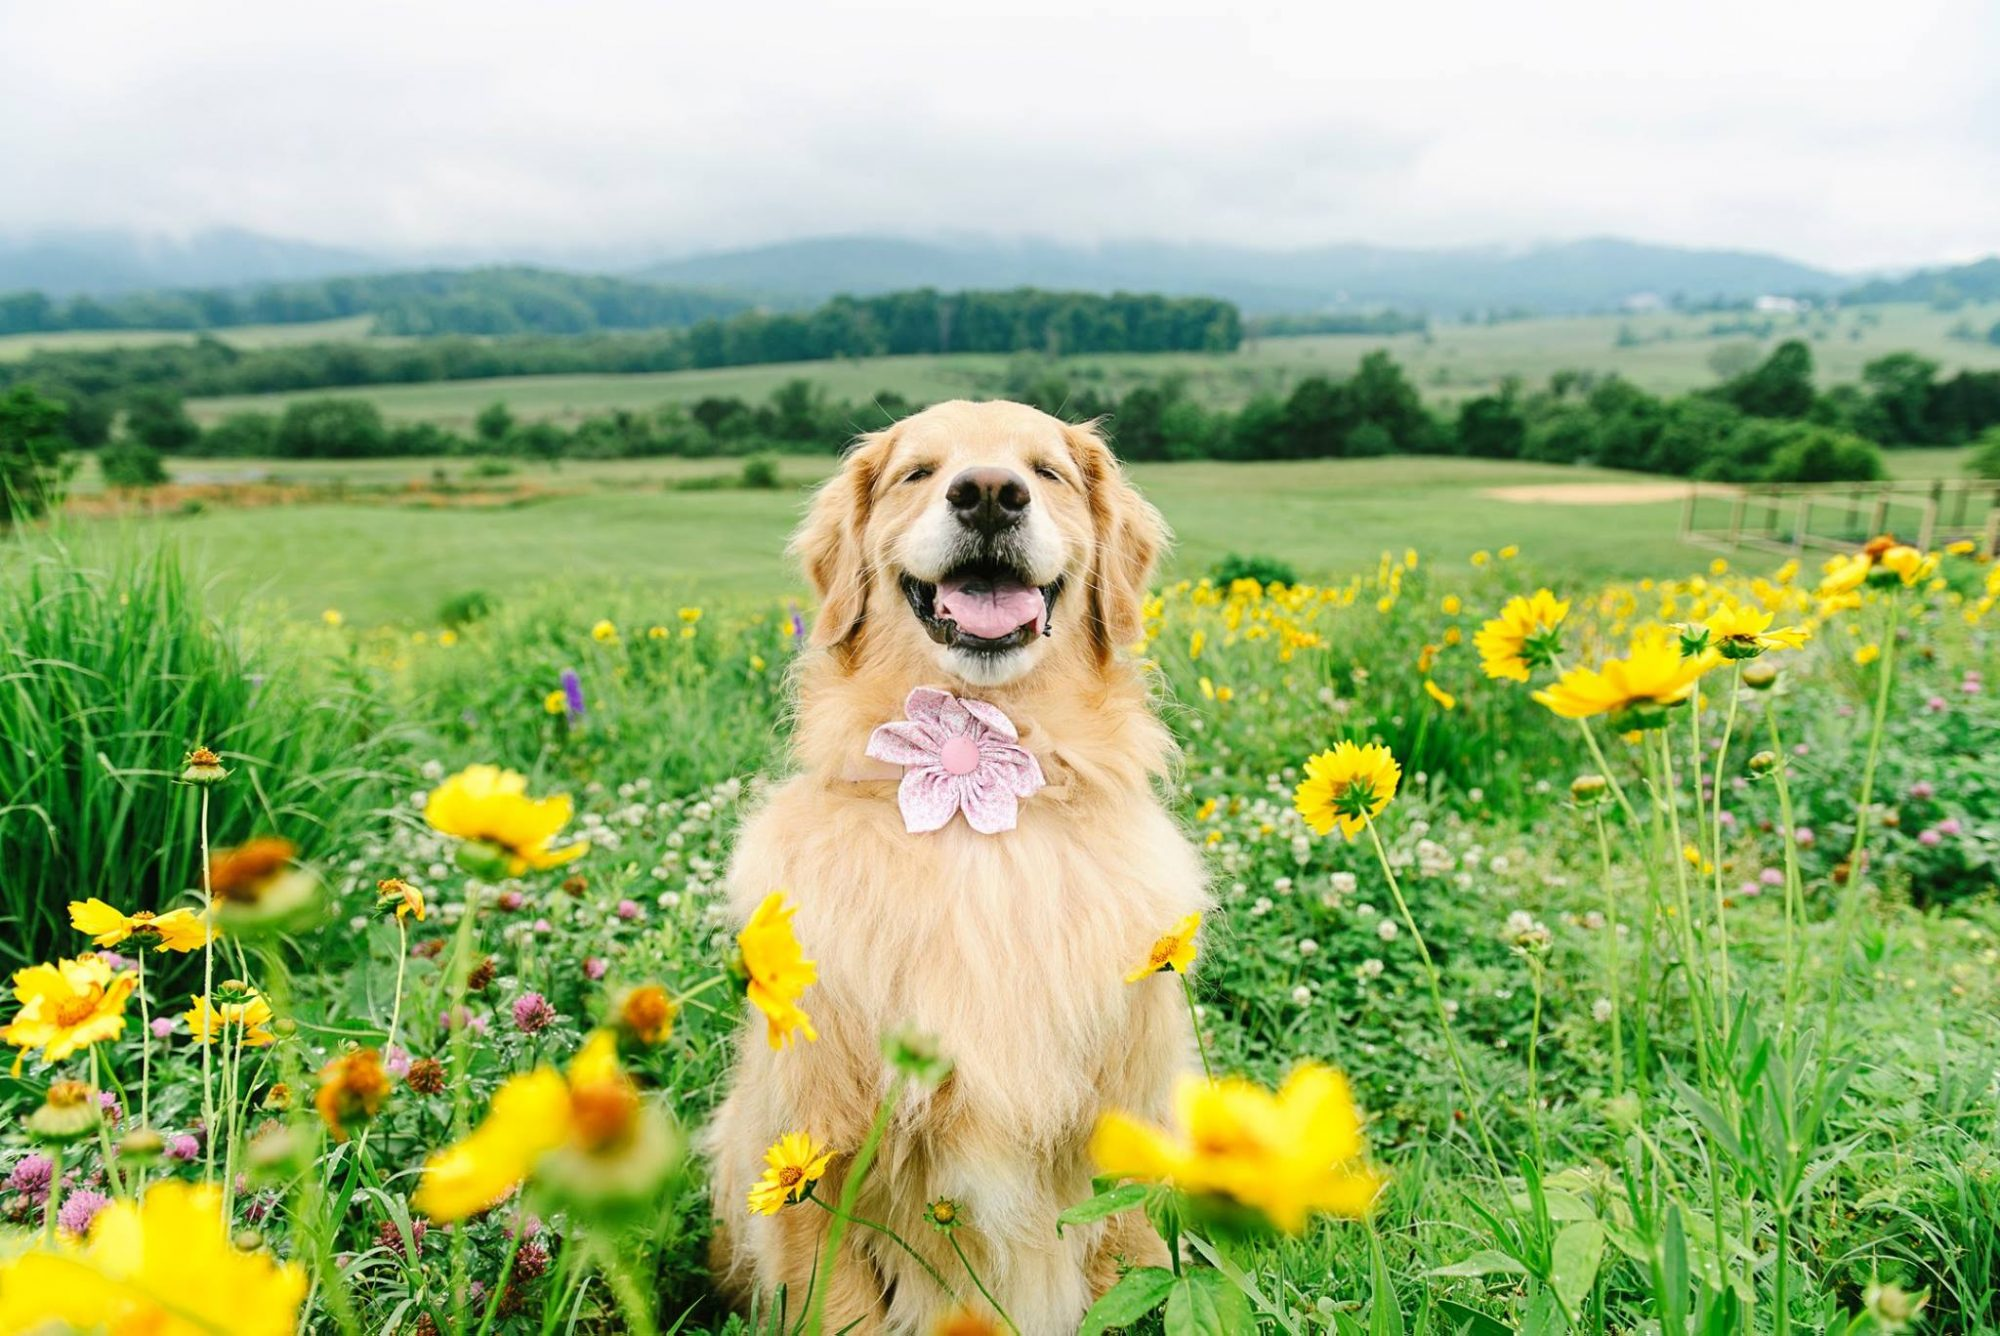 Charlottesville Photographer's Instagram Famous Golden Retriever